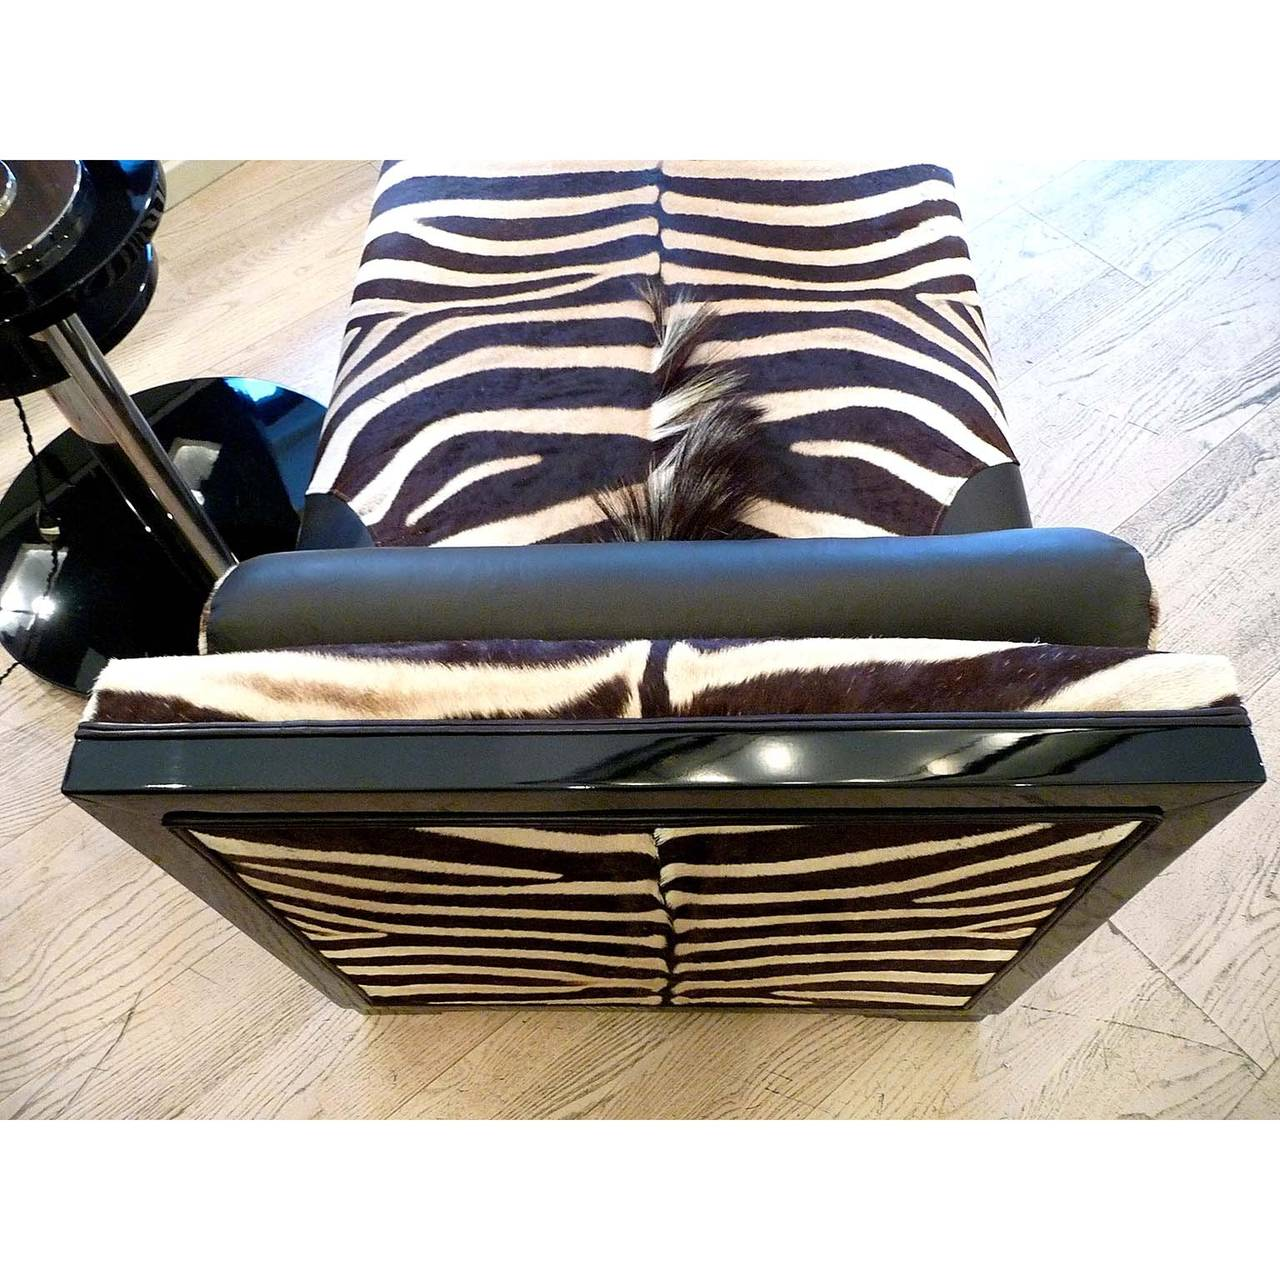 Exquisite art deco french chaise longue with zebra skin at for Chaise longue deco